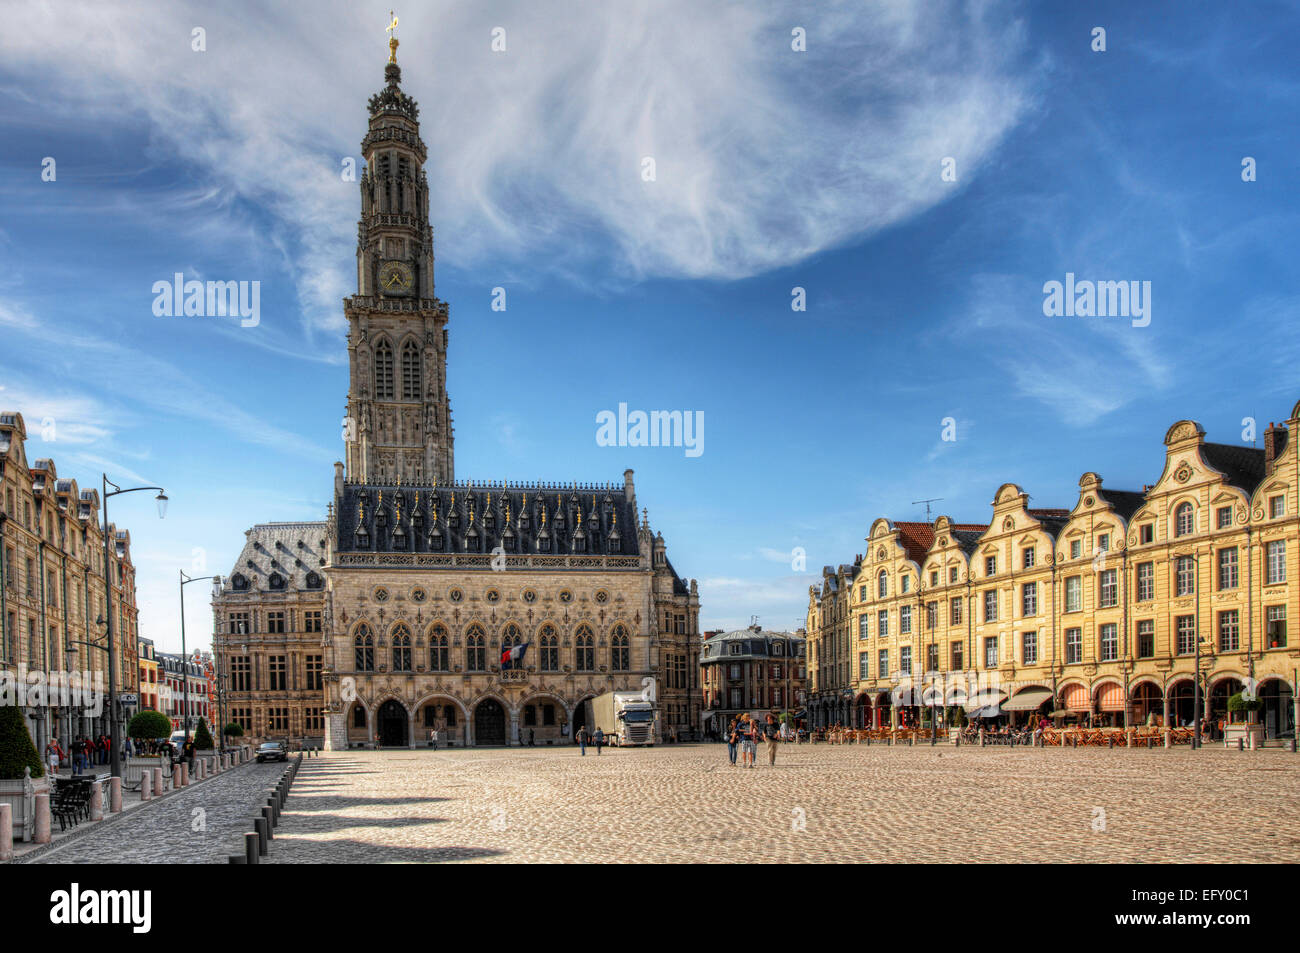 The Place des Heros in Arras, France - Stock Image